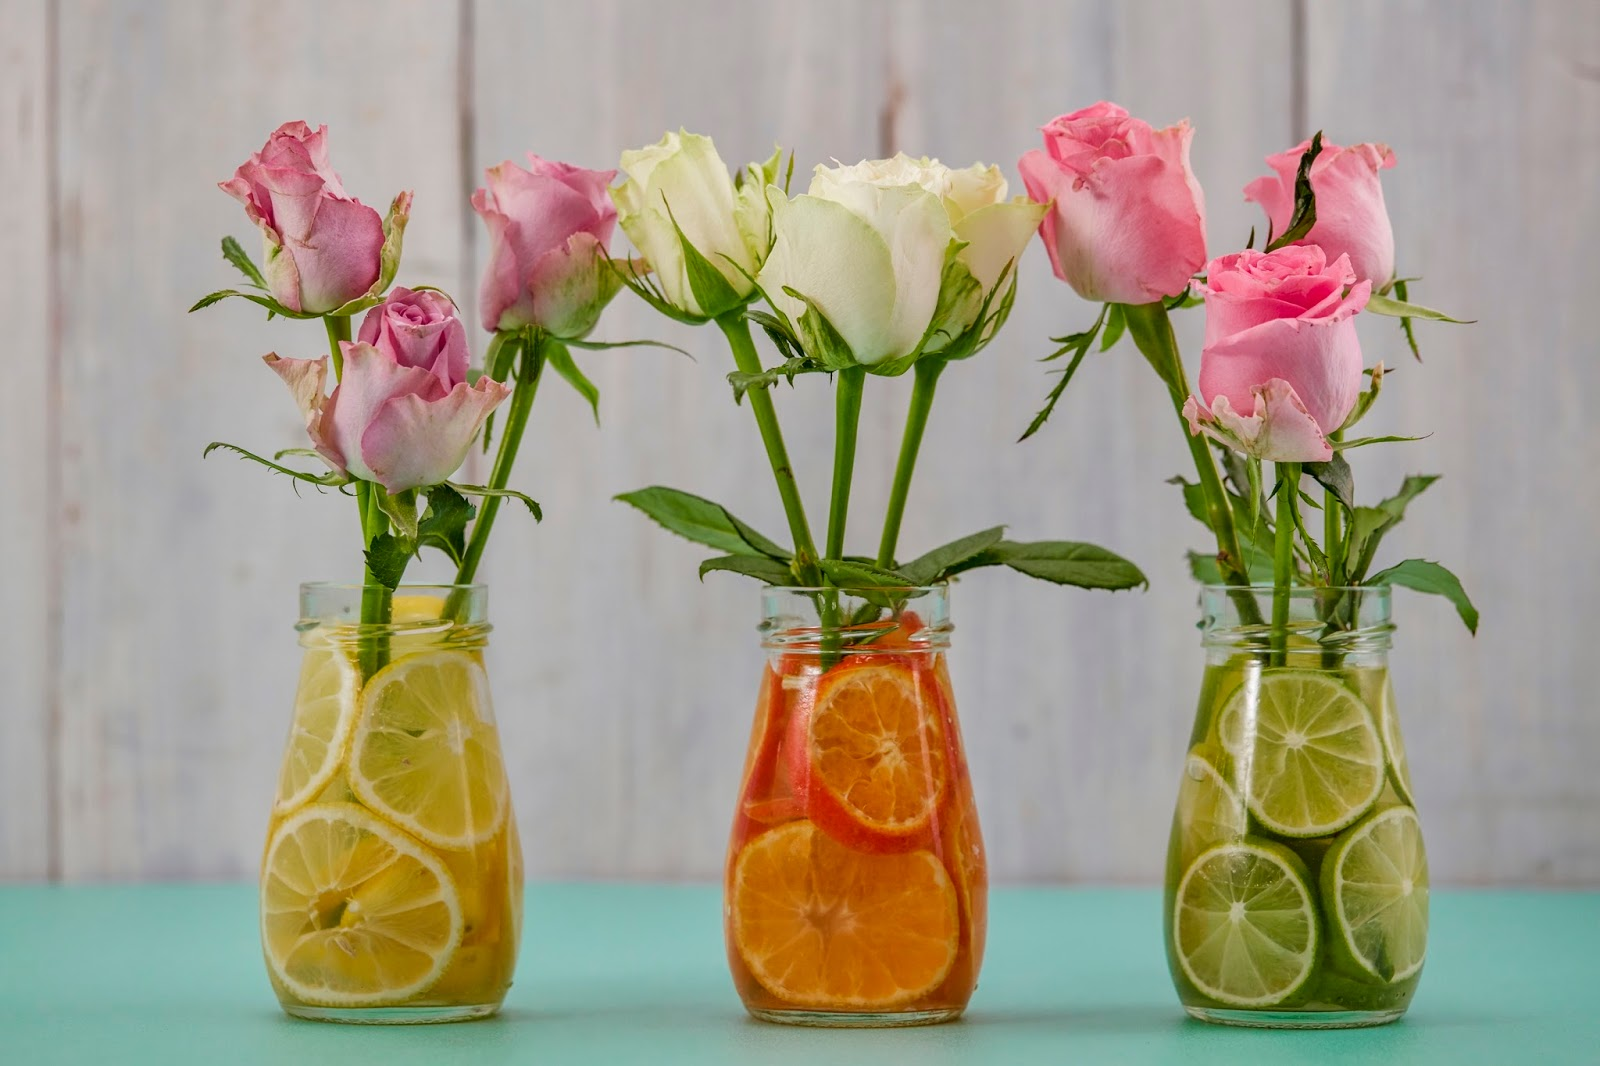 10 Upcycled Jam Jars Ideas To Try Out